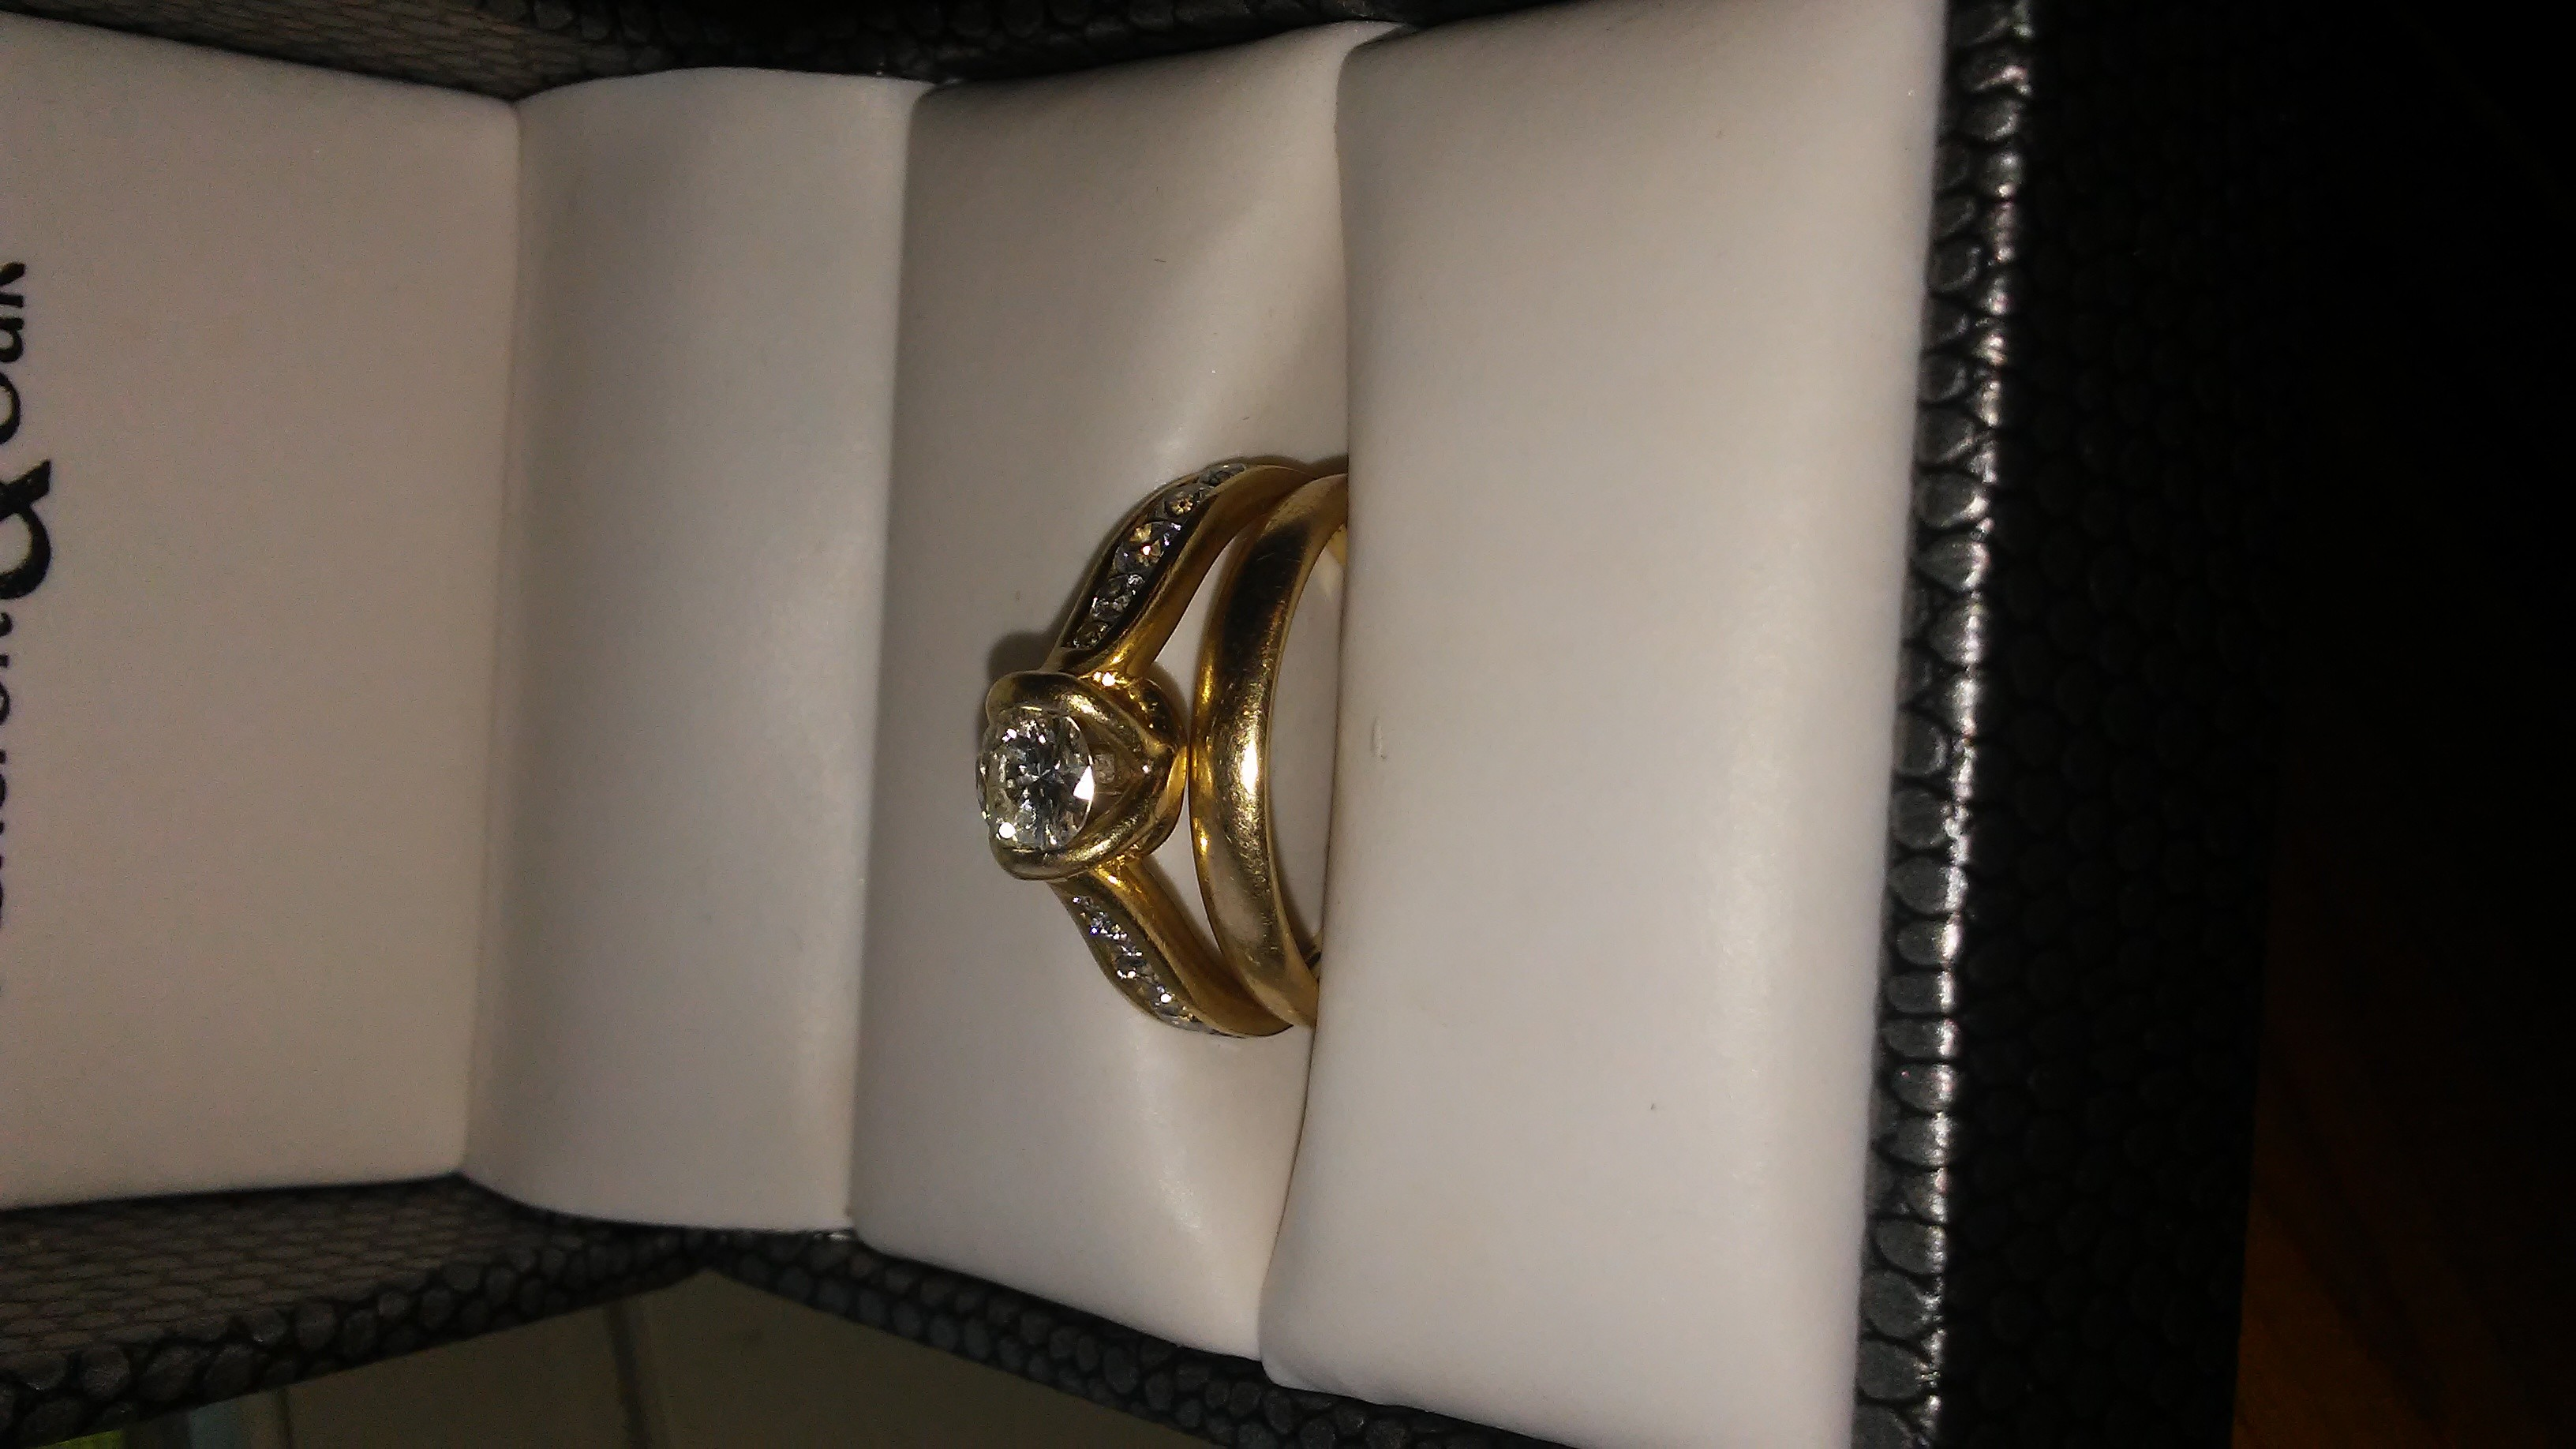 Ashcroft&Oak diamond engagement ring with kay jewelers 10k gold band